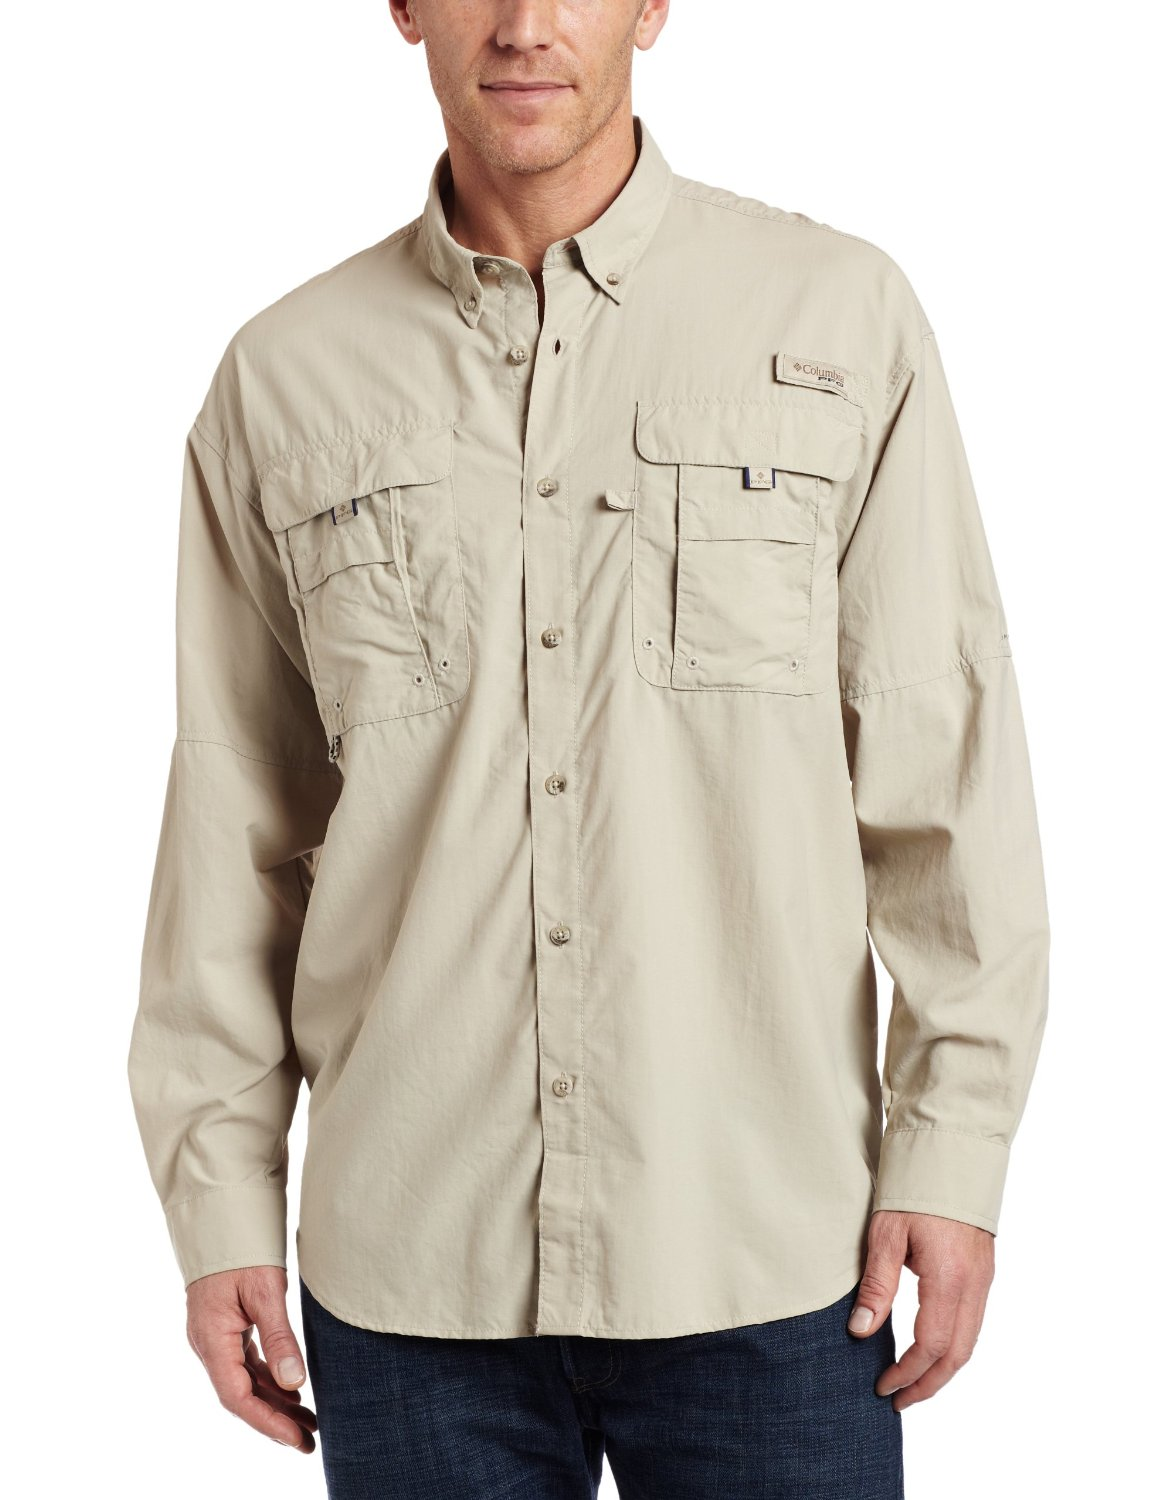 Amazon.com : Columbia Sportswear Men's Bahama II Long Sleeve Shirt : Athletic Shirts